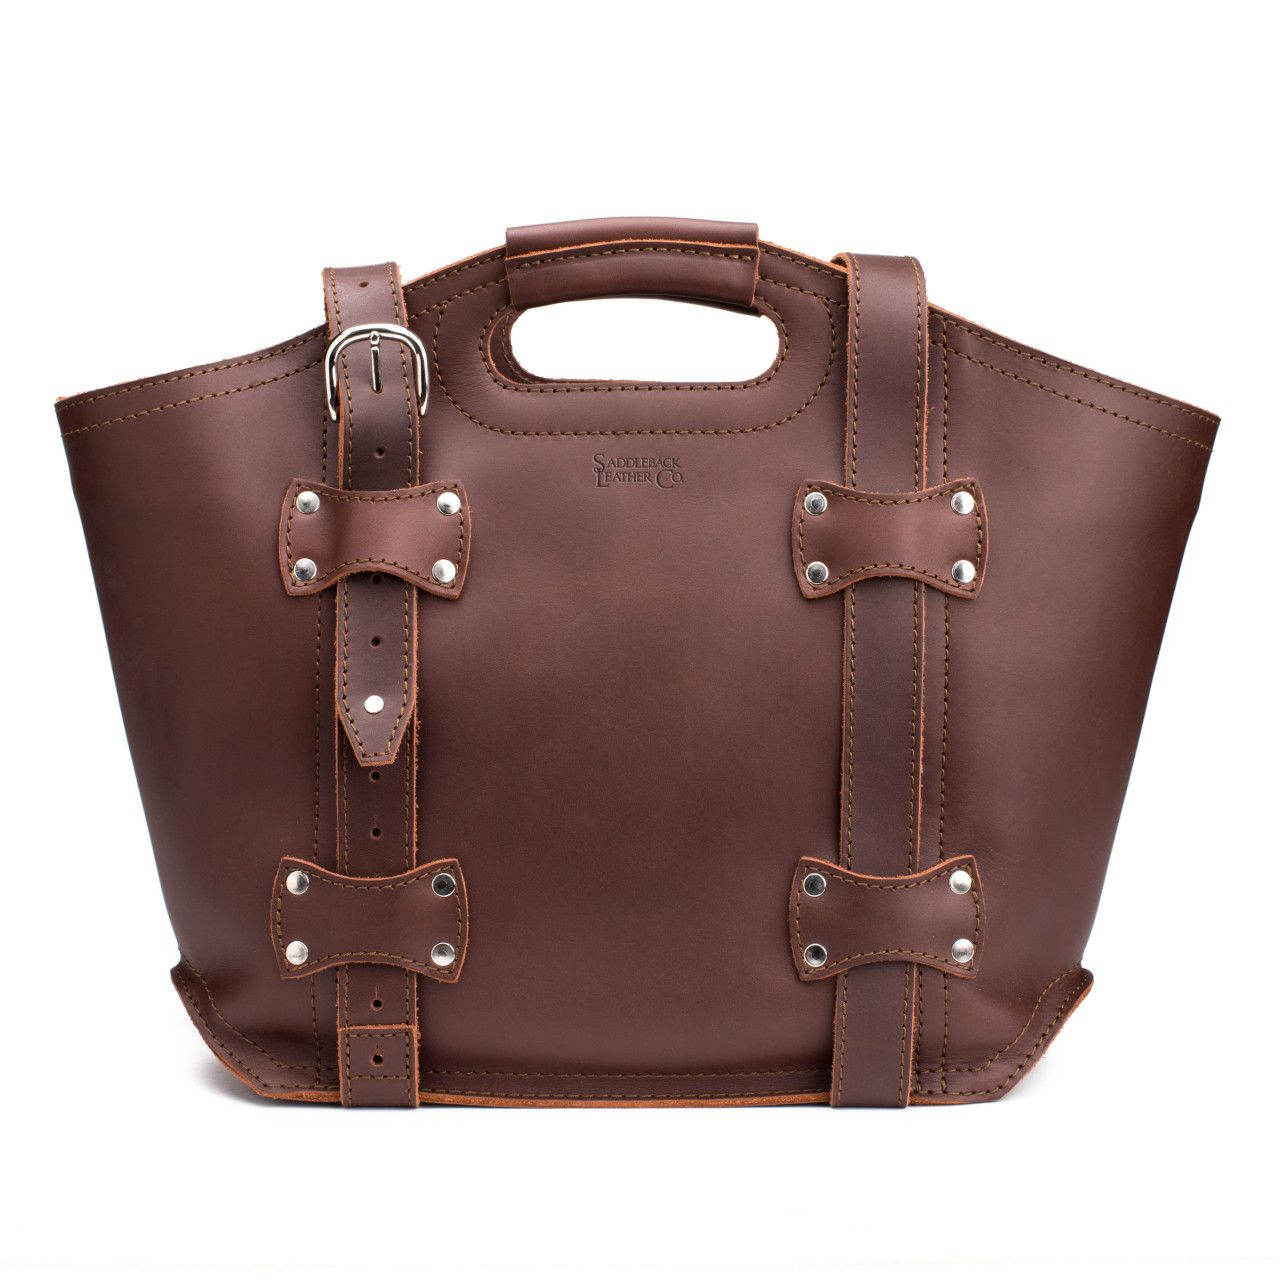 premium leather tote bag large in chestnut leather